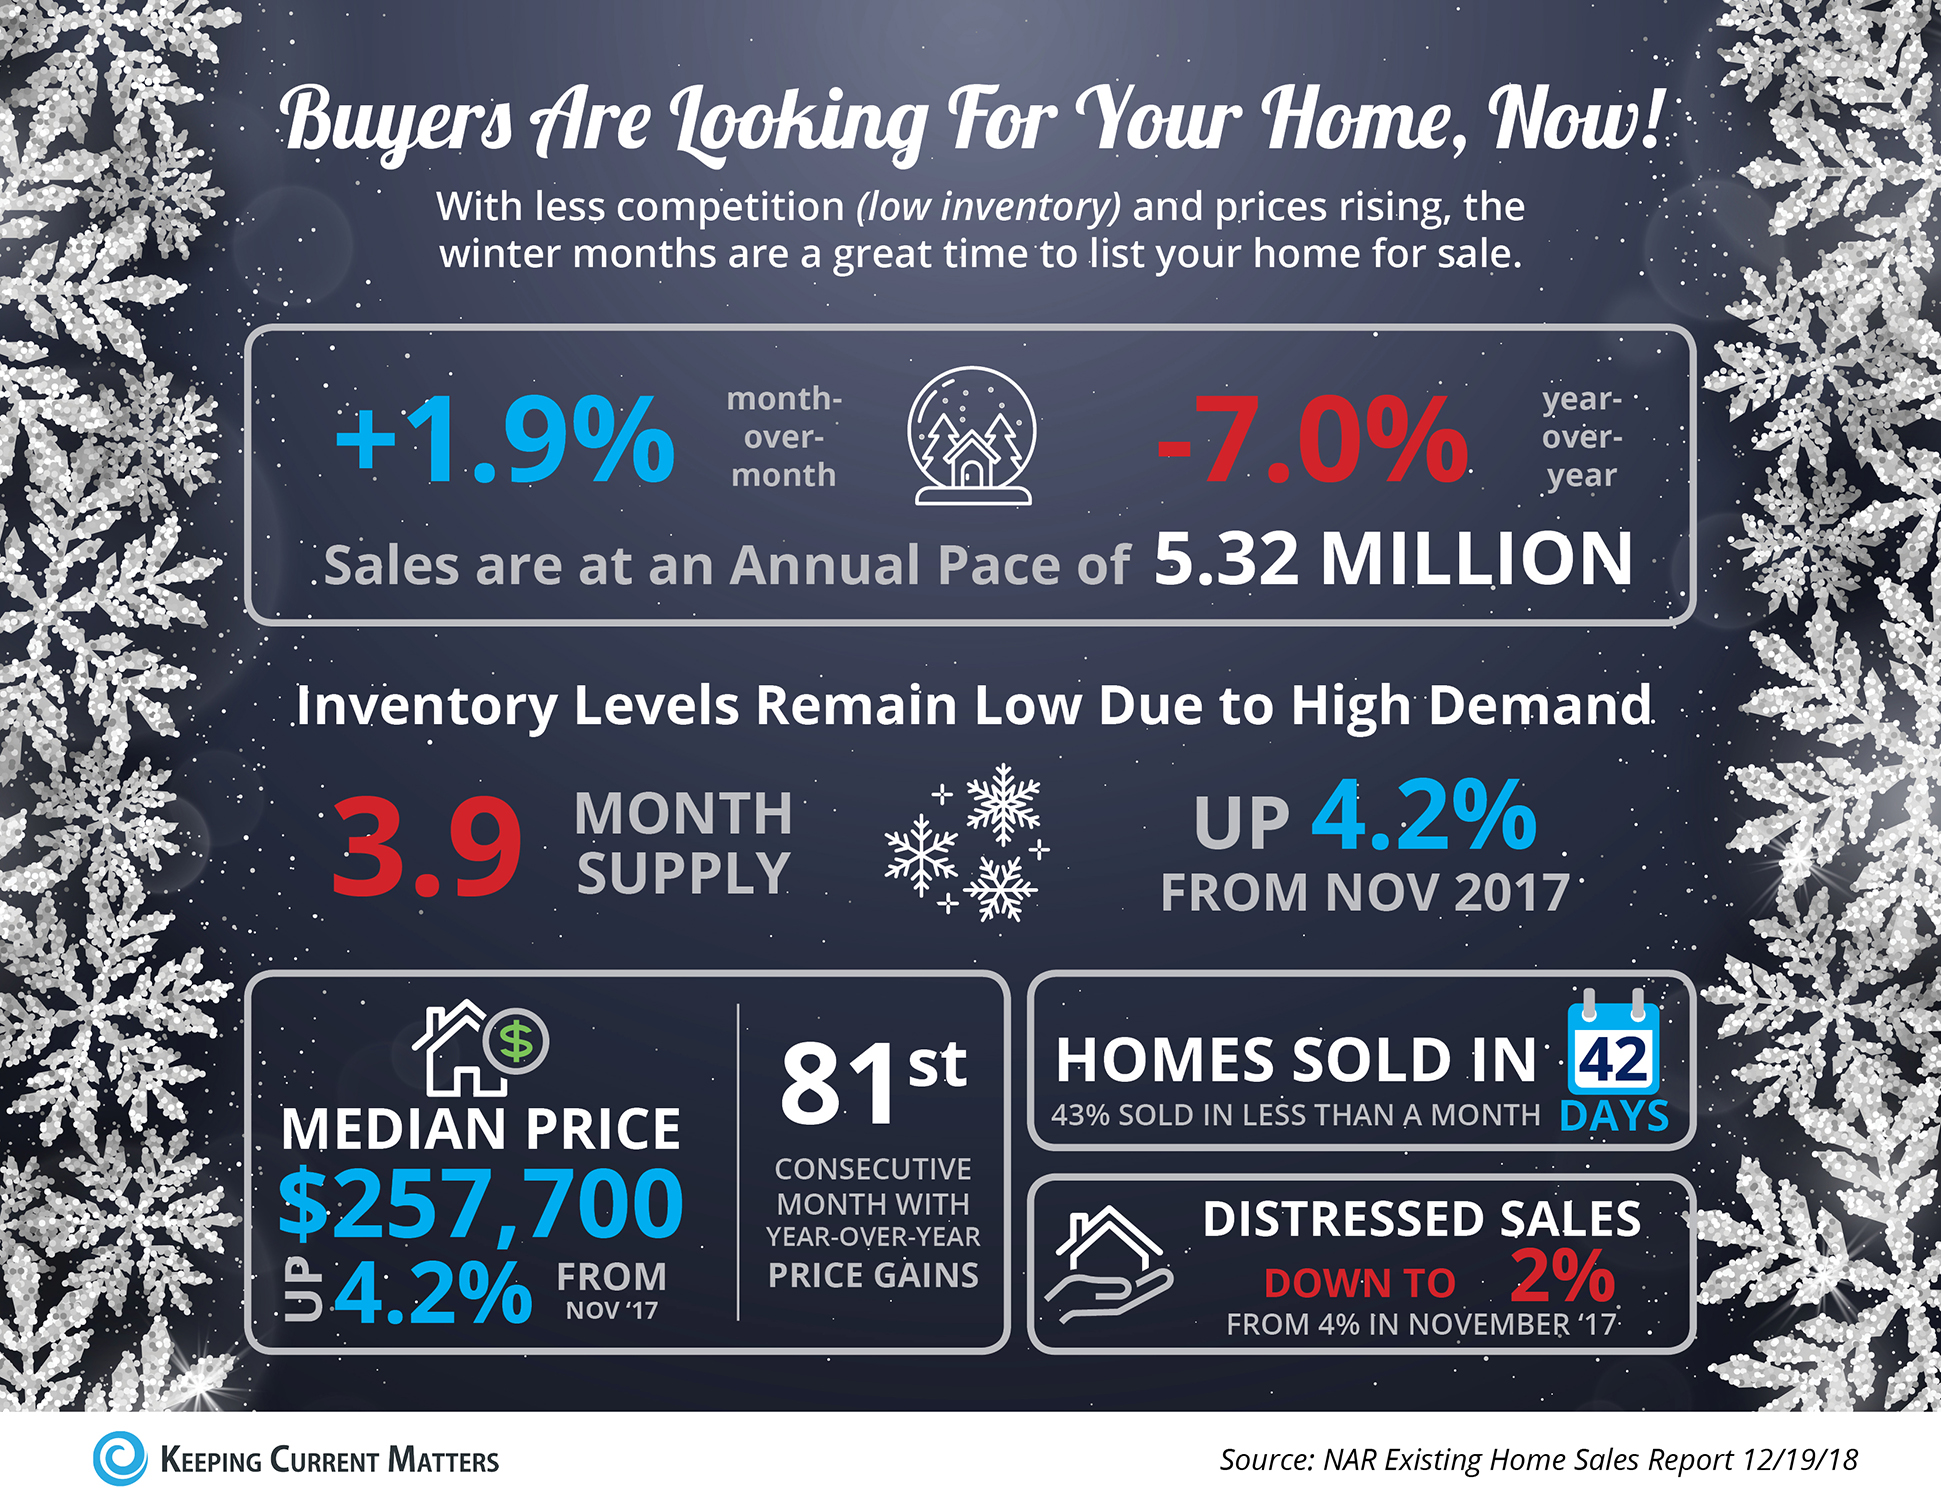 Buyers Are Looking for Your Home, Now [INFOGRAPHIC] | Keeping Current Matters